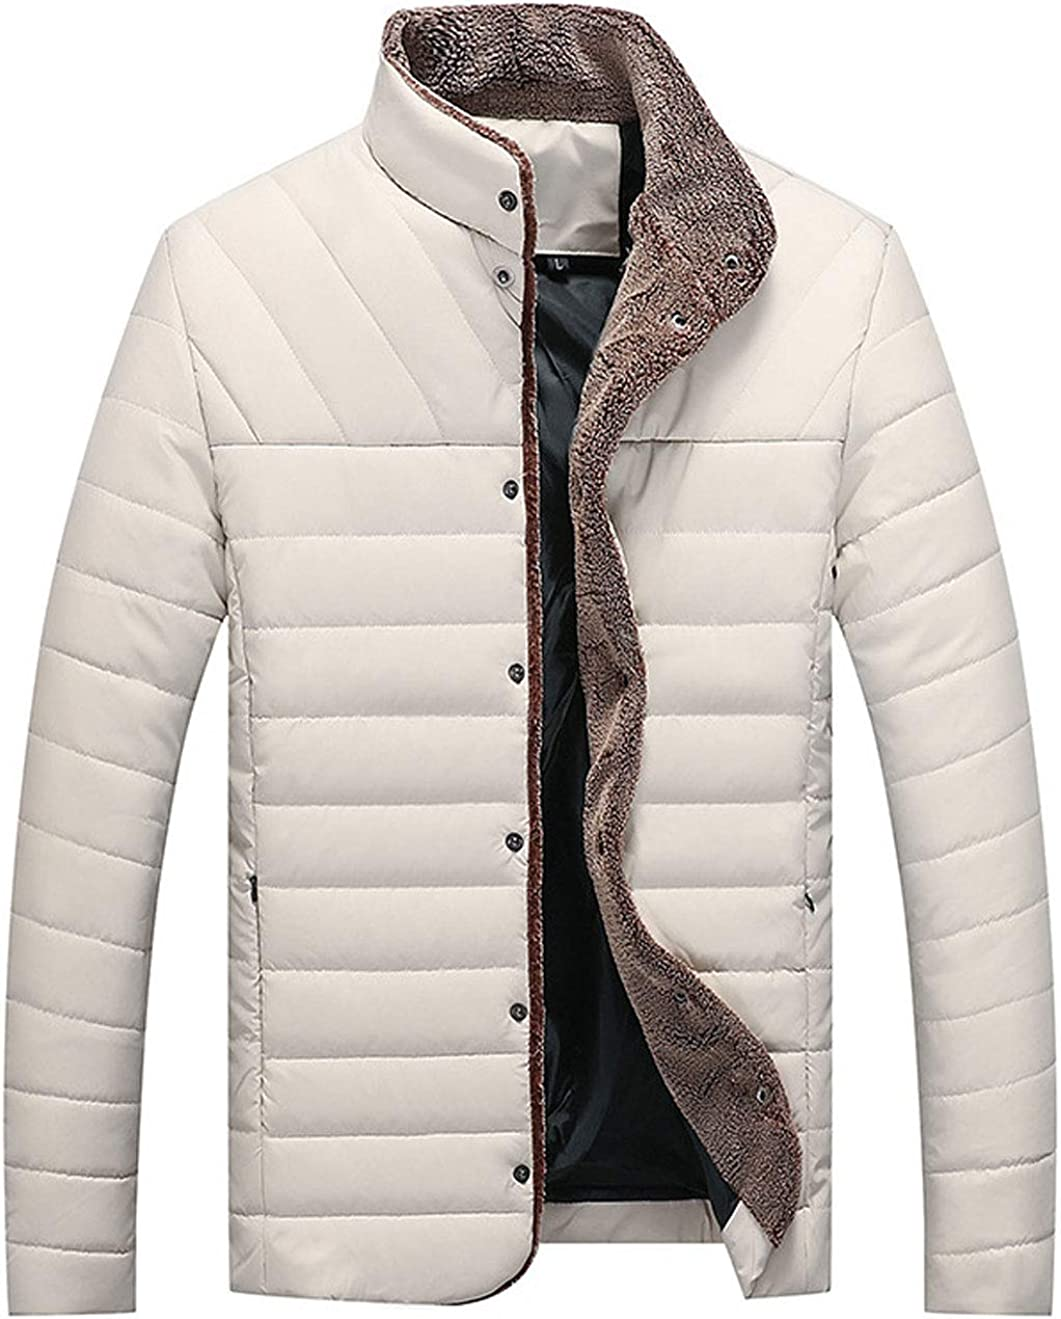 ebossy Men's Casual Stand Collar Button Up Faux Leather Lightweight Quilted Jacket